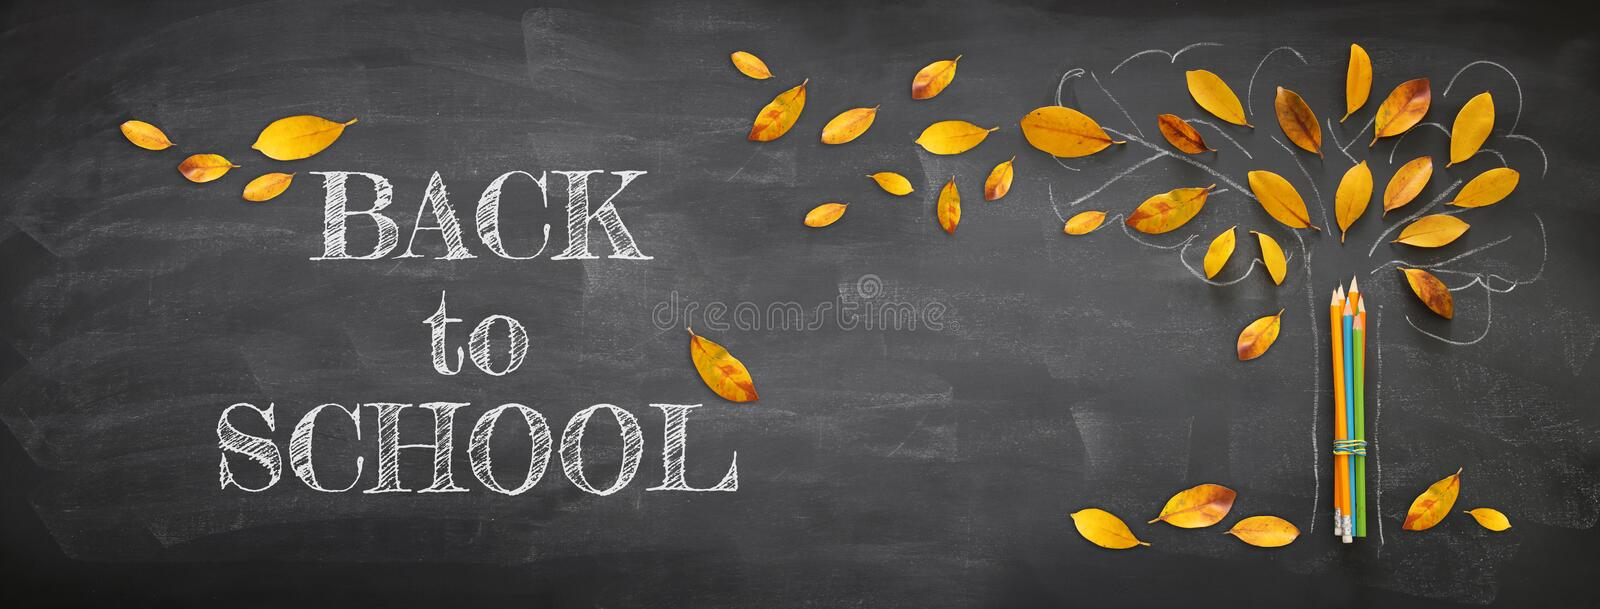 Back to school concept. Top view banner of pencils next to tree sketch with autumn dry leaves over classroom blackboard background vector illustration